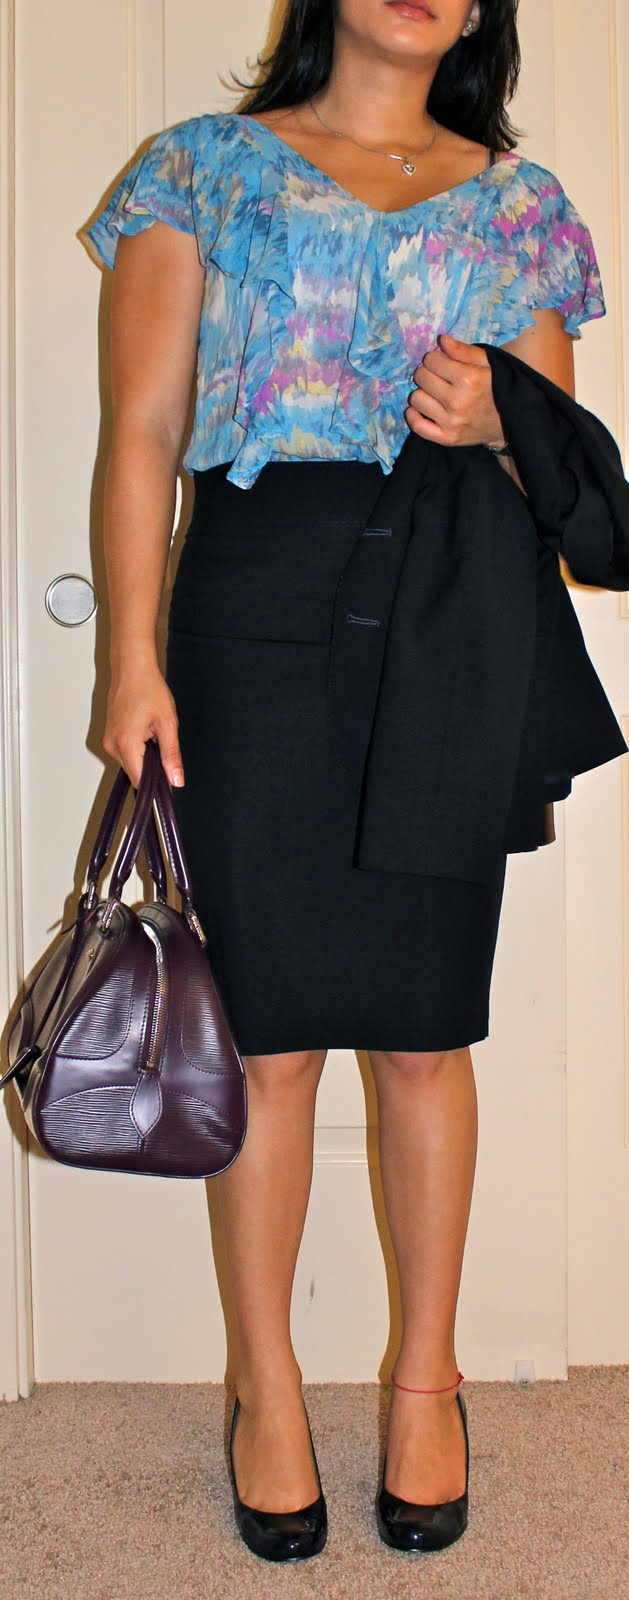 Ruffled shell with skirt suit